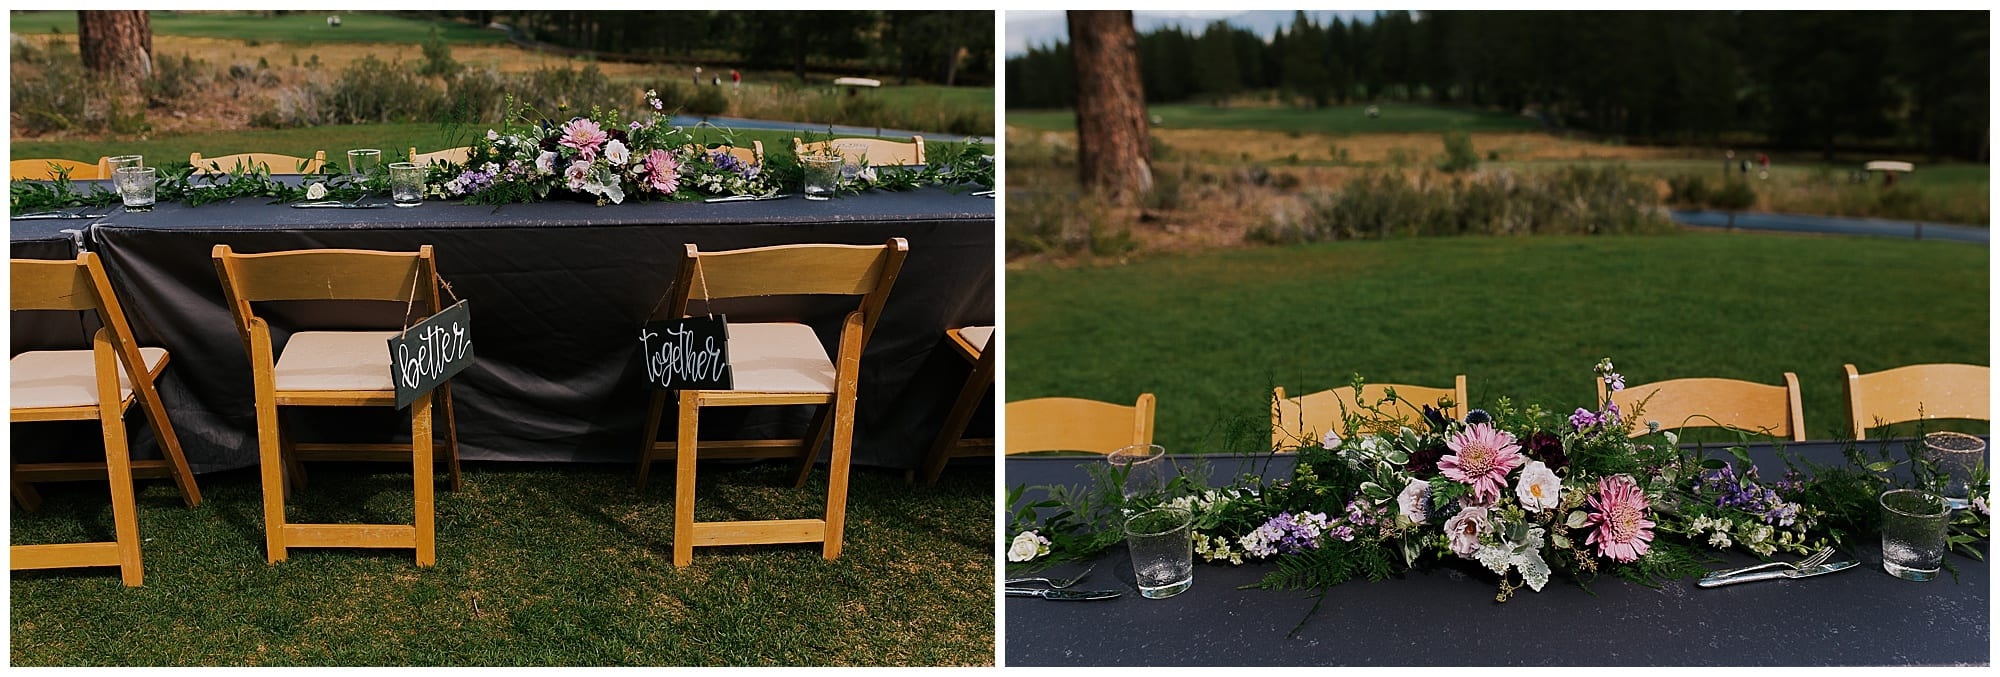 table centerpieces at wedding reception outdoors Truckee California mountain wedding